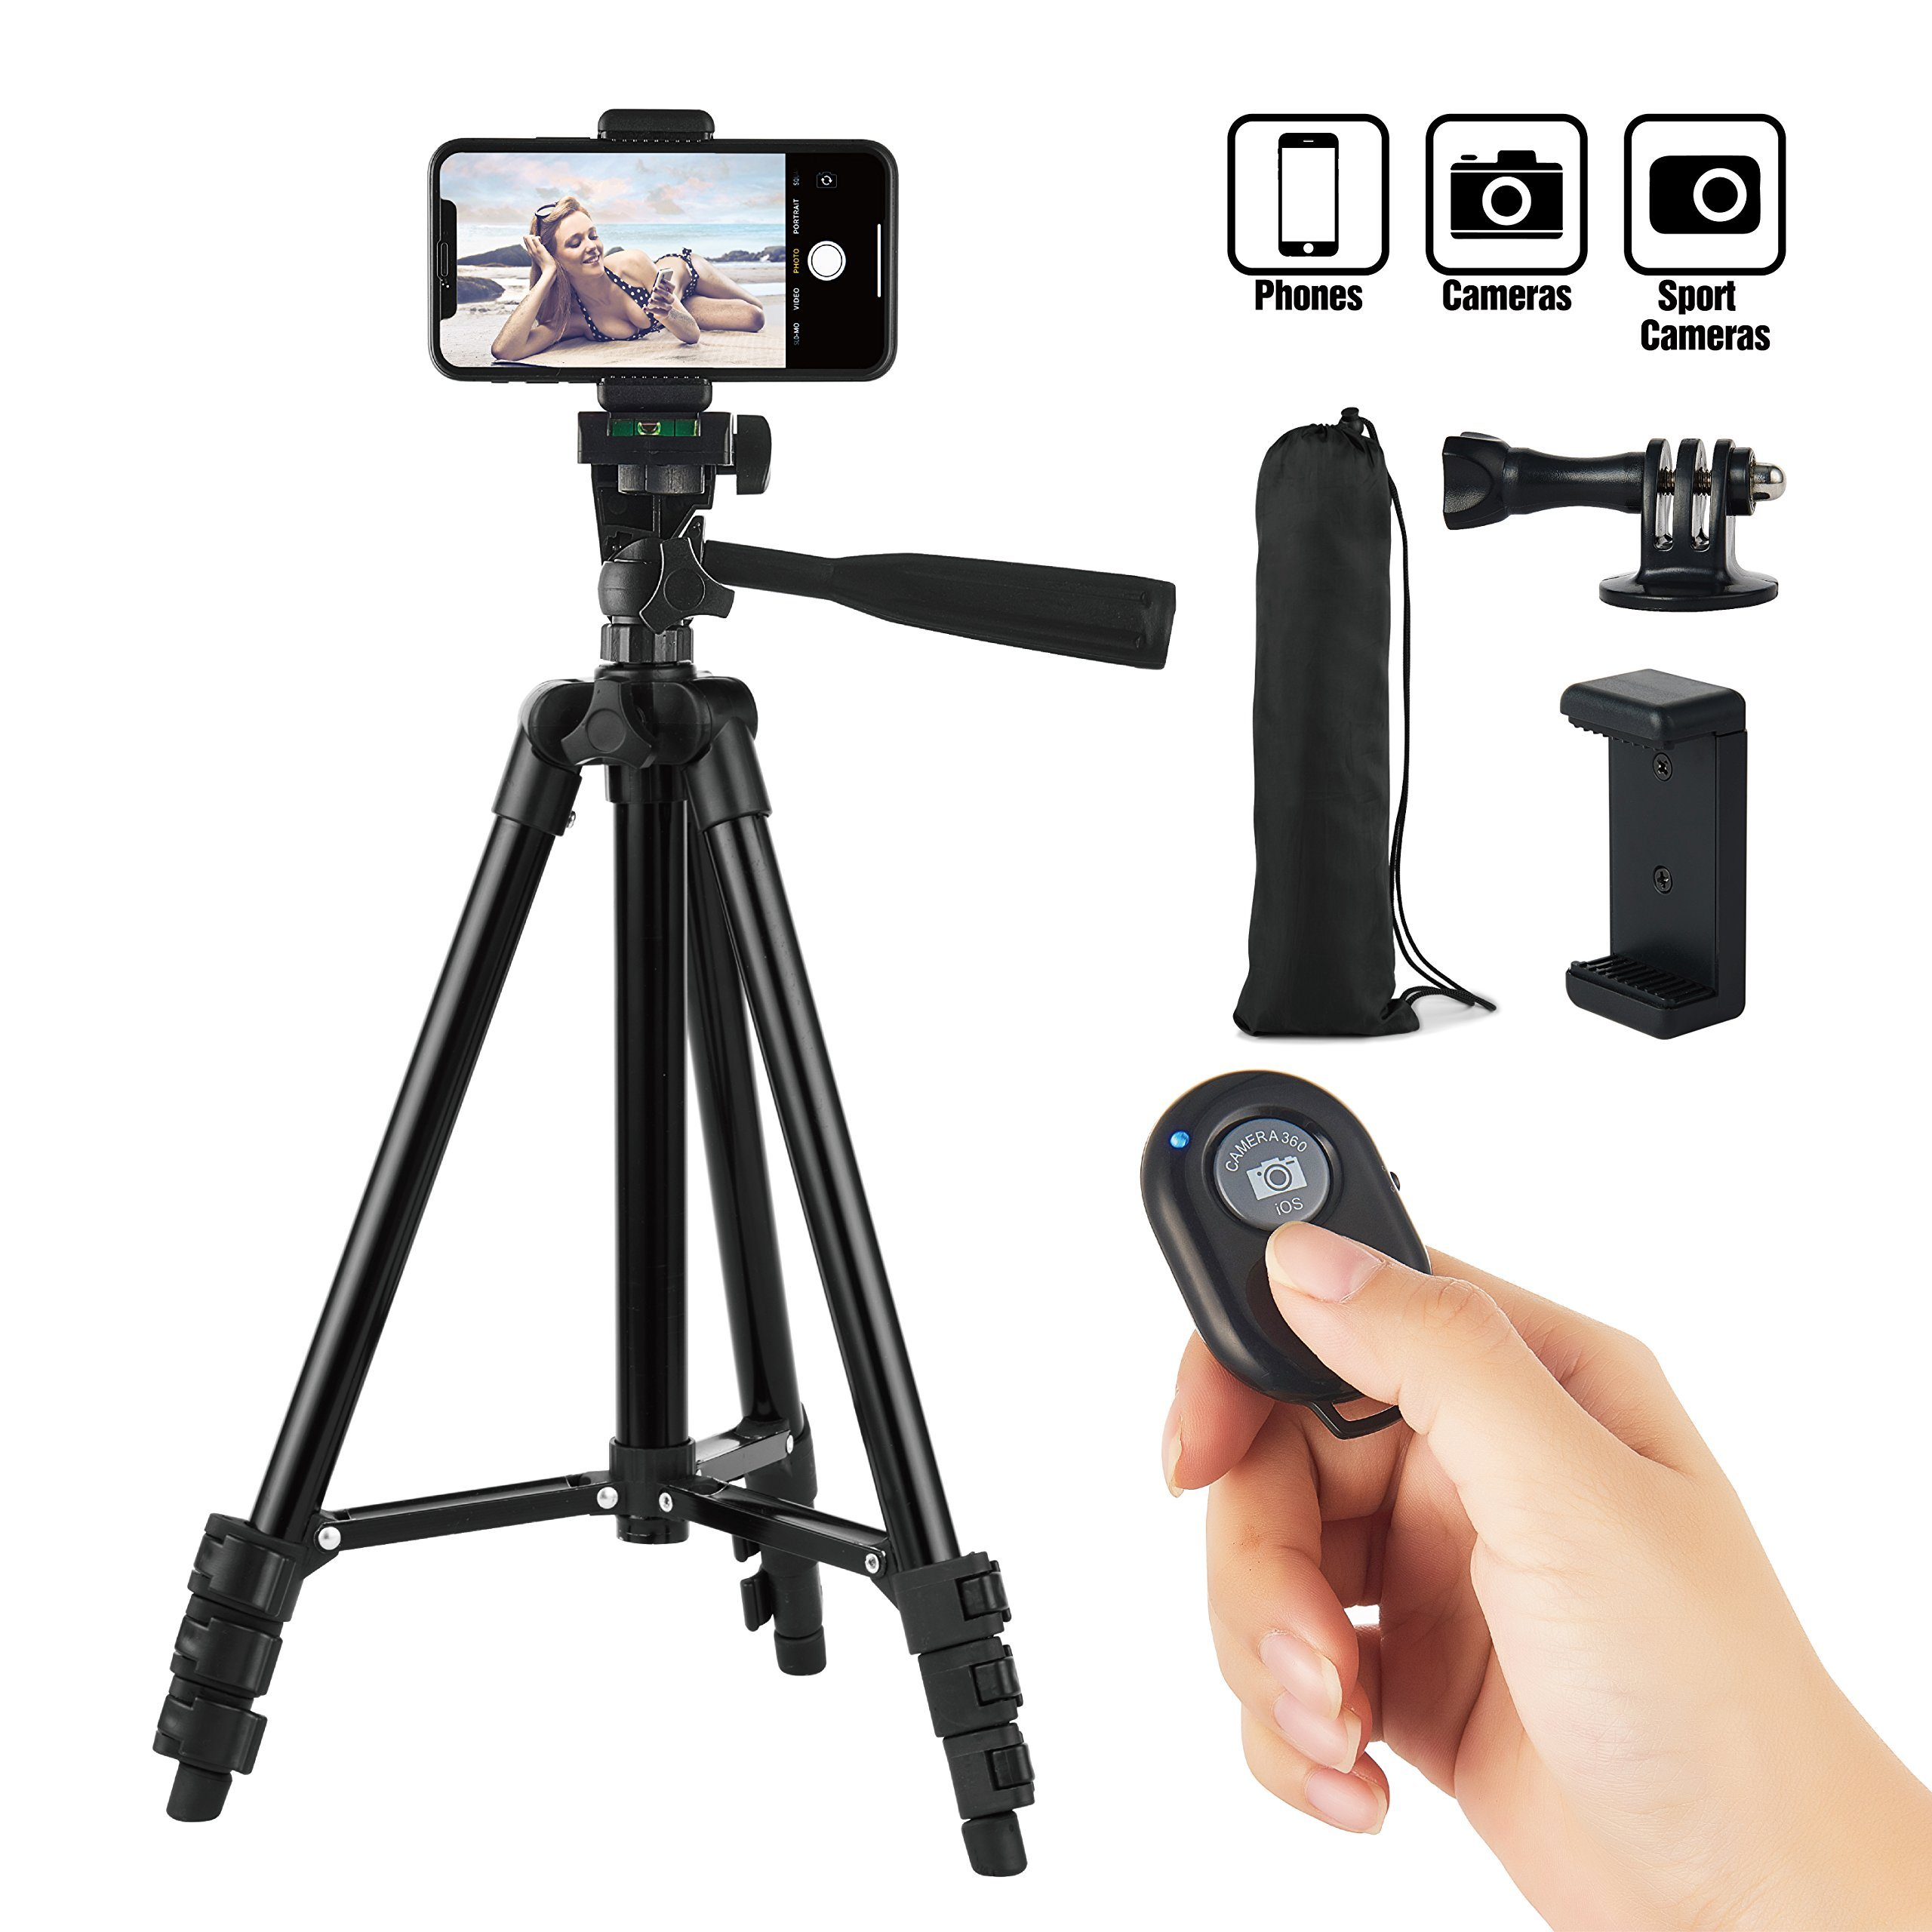 Hitch Phone Tripod, Gopro Tripod 42 Inch 106cm Aluminum Lightweight Smartphone Tripod for Iphone/Samsung/Huawei Cellphone, Camera and Gopro with Bluetooth Remote Control, Carrying Bag and Gopro Mount by Hitch